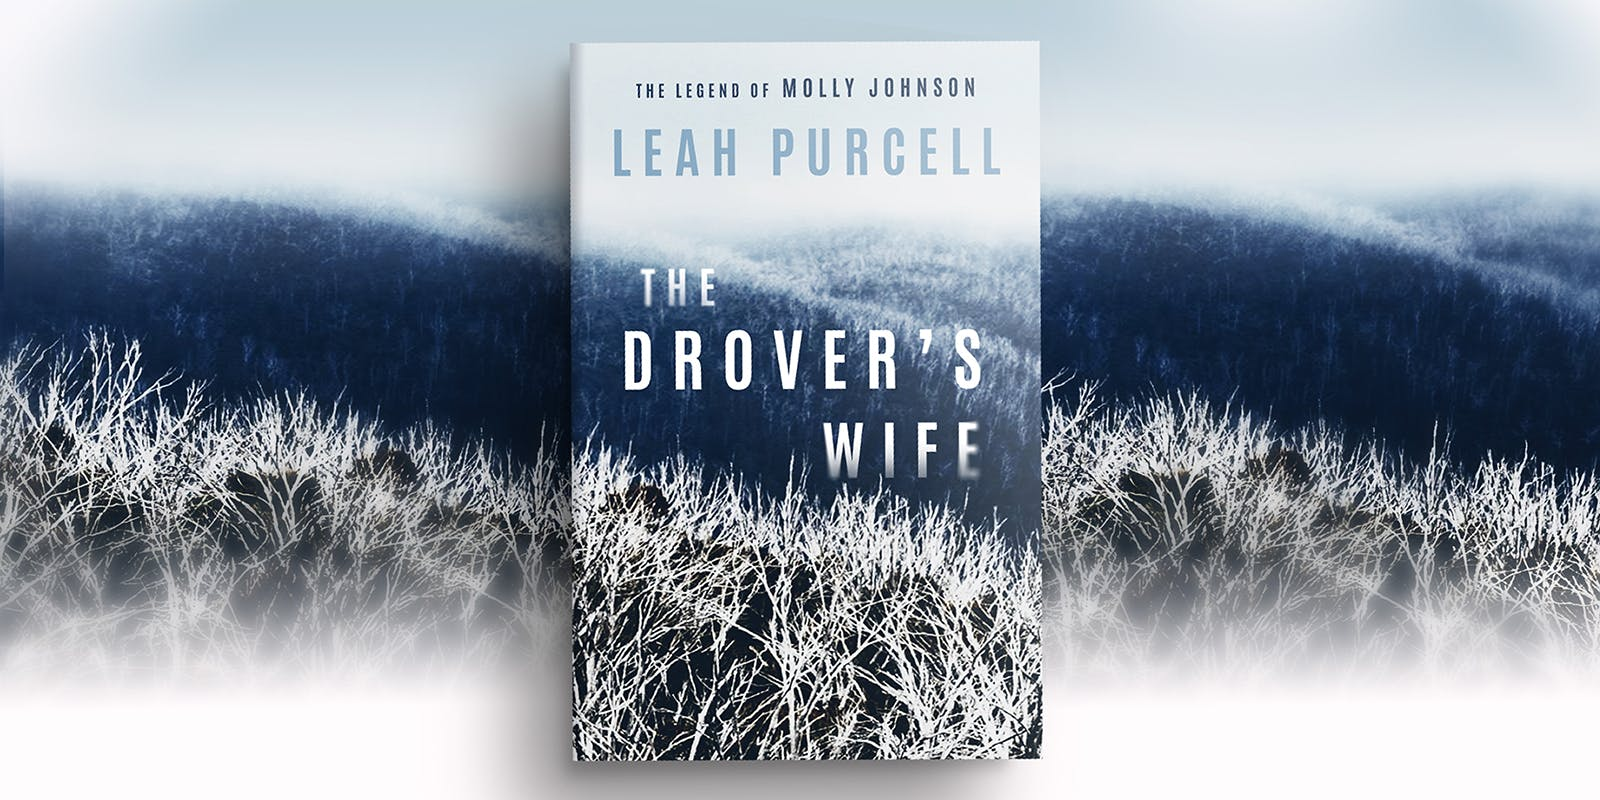 The Drover's Wife book club notes